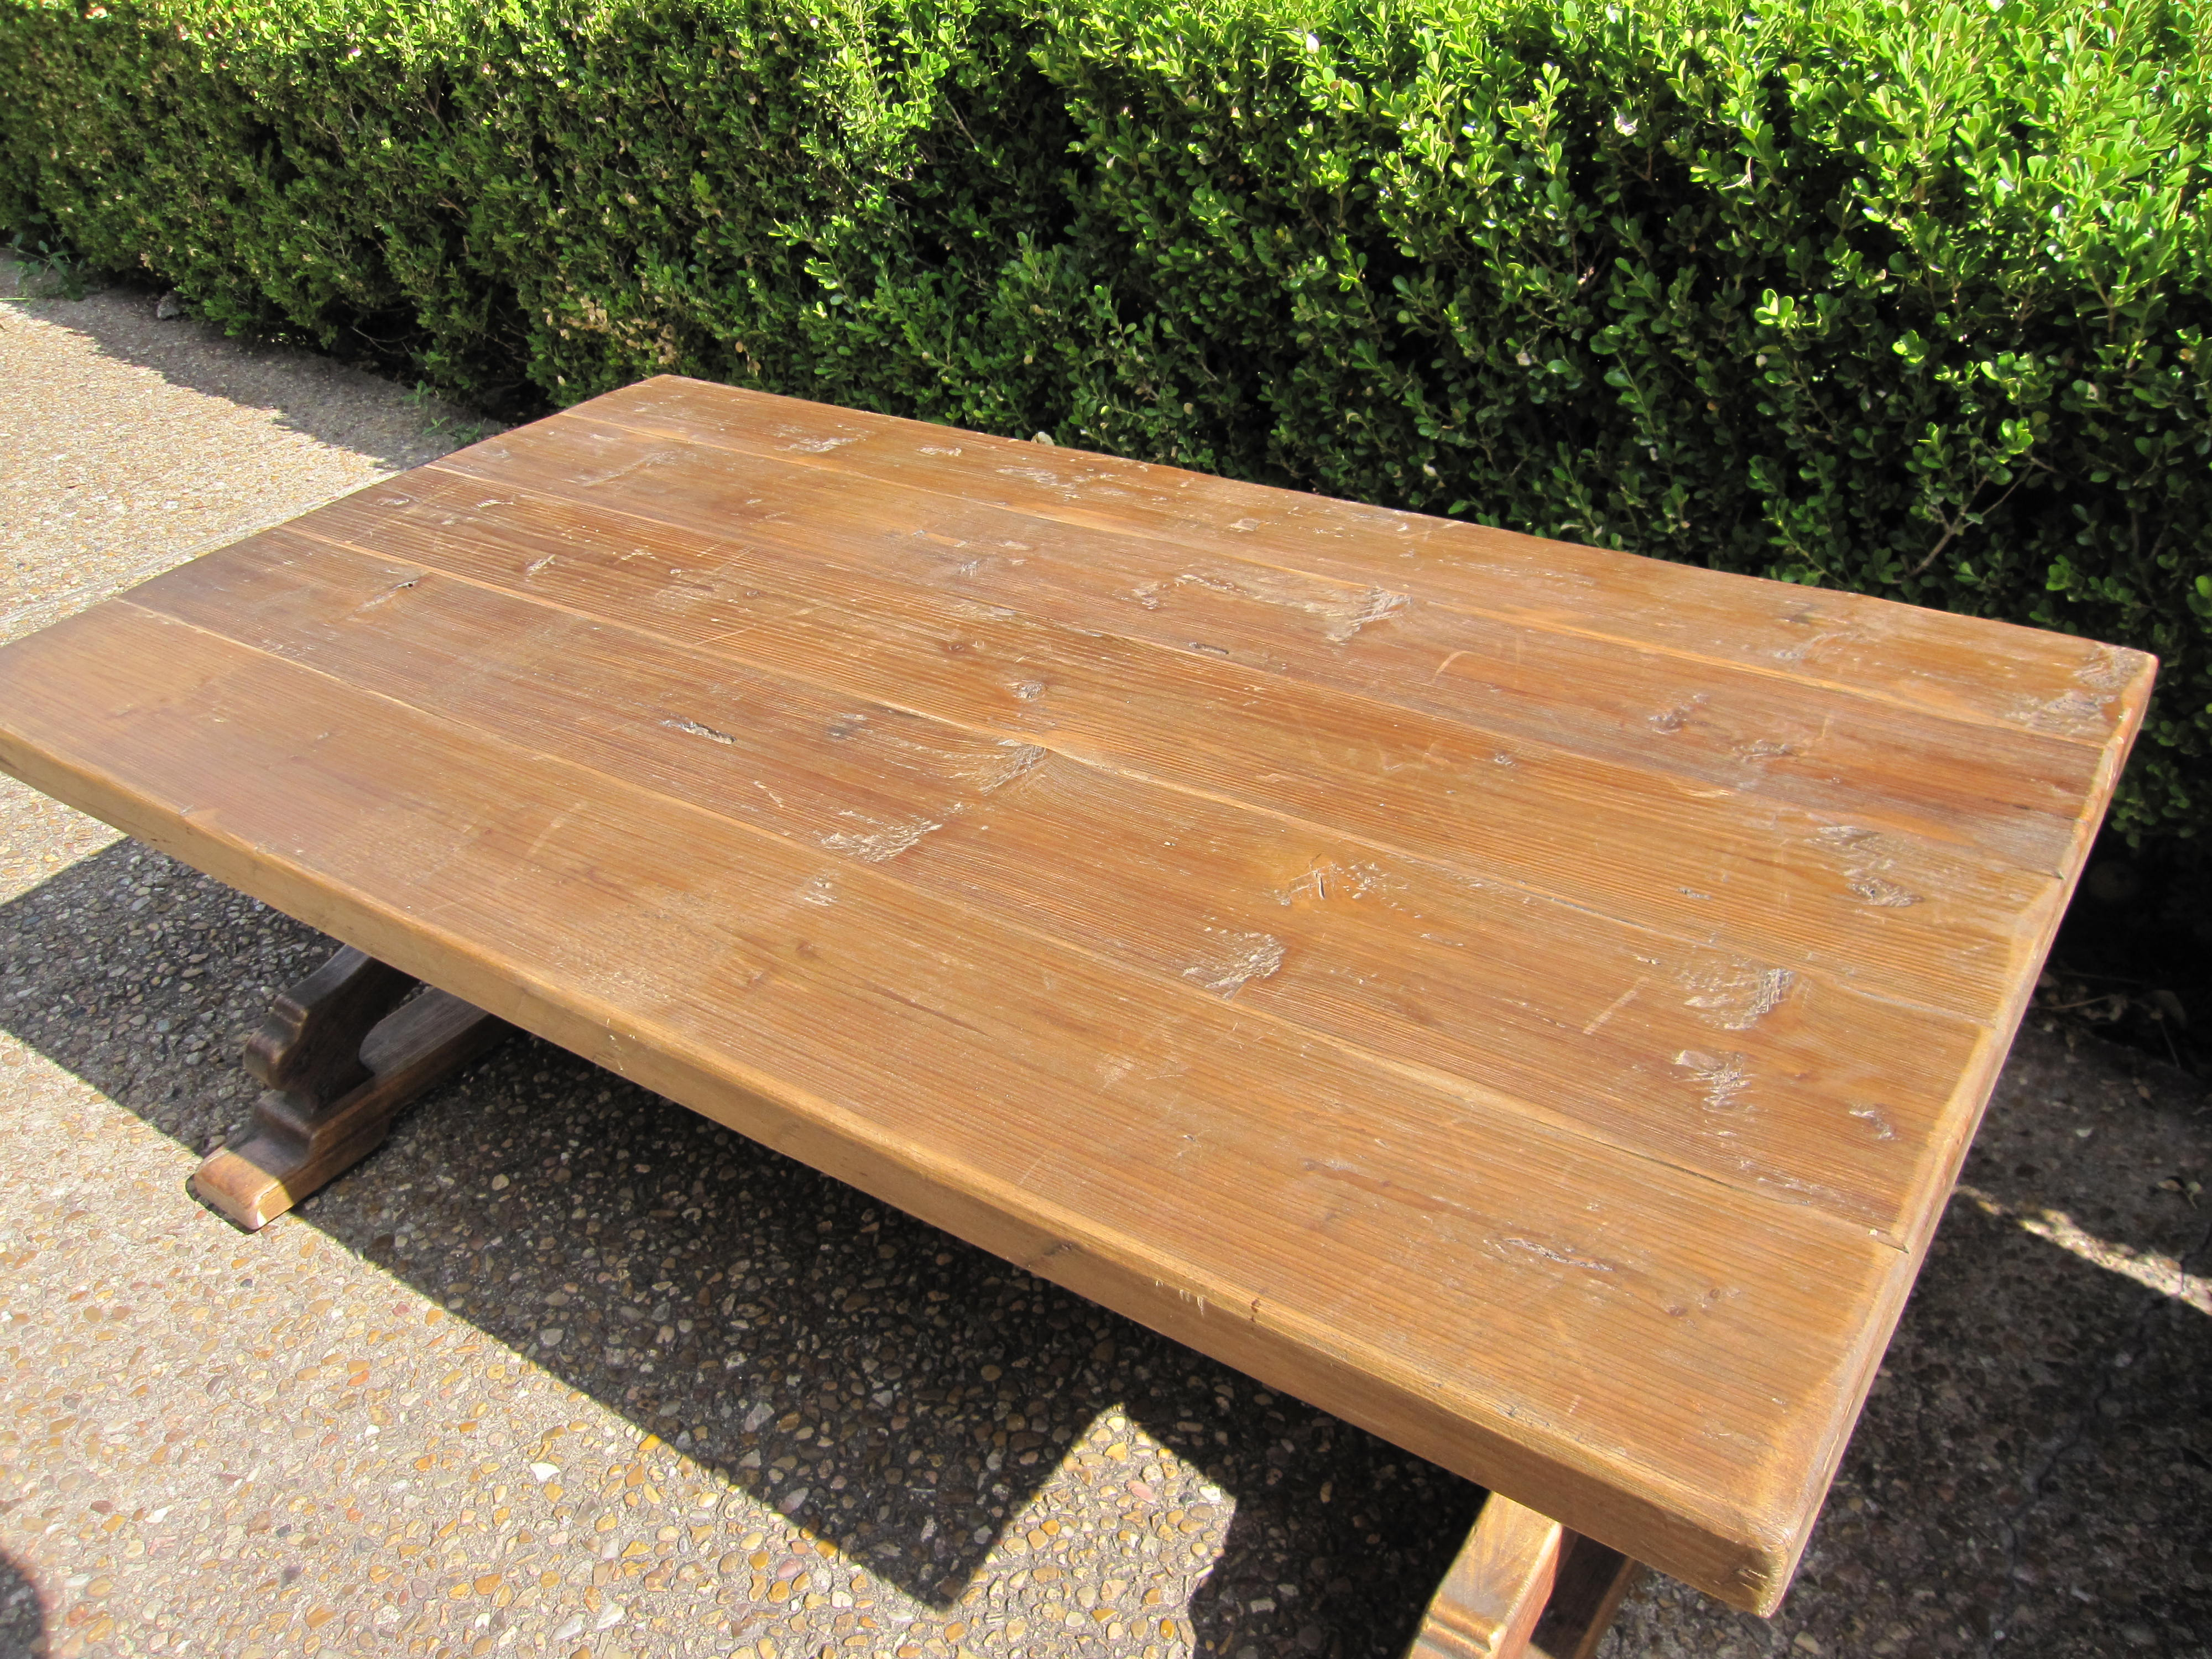 Wood Wooden Table Top Designs Pdf Plans